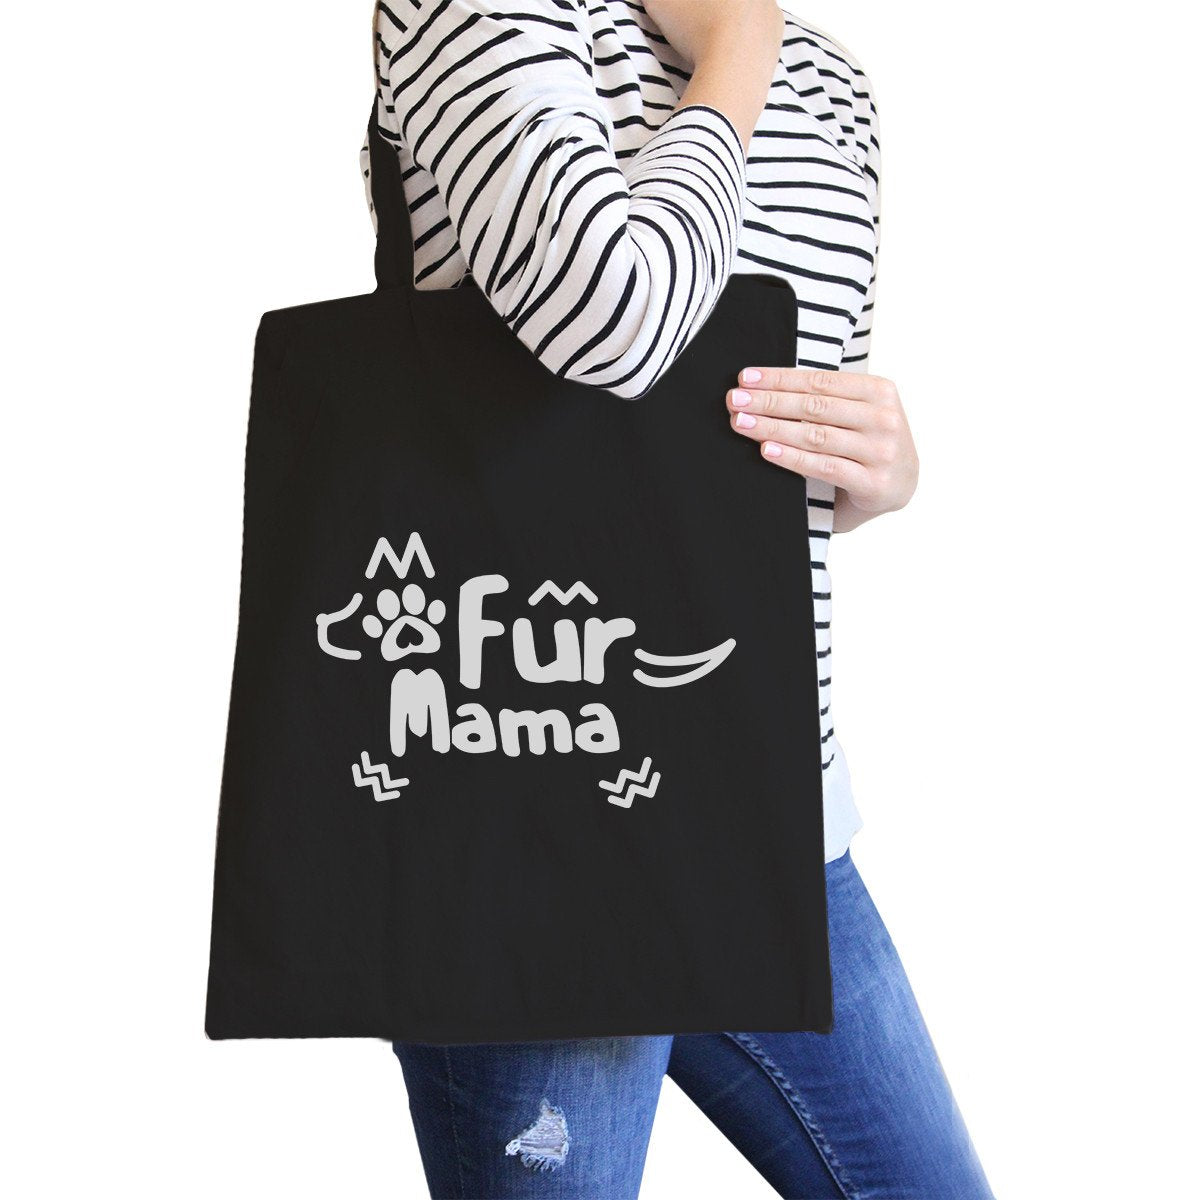 Fur Mama Black Canvas Tote Bag Unique Design Grocery Bags For Moms